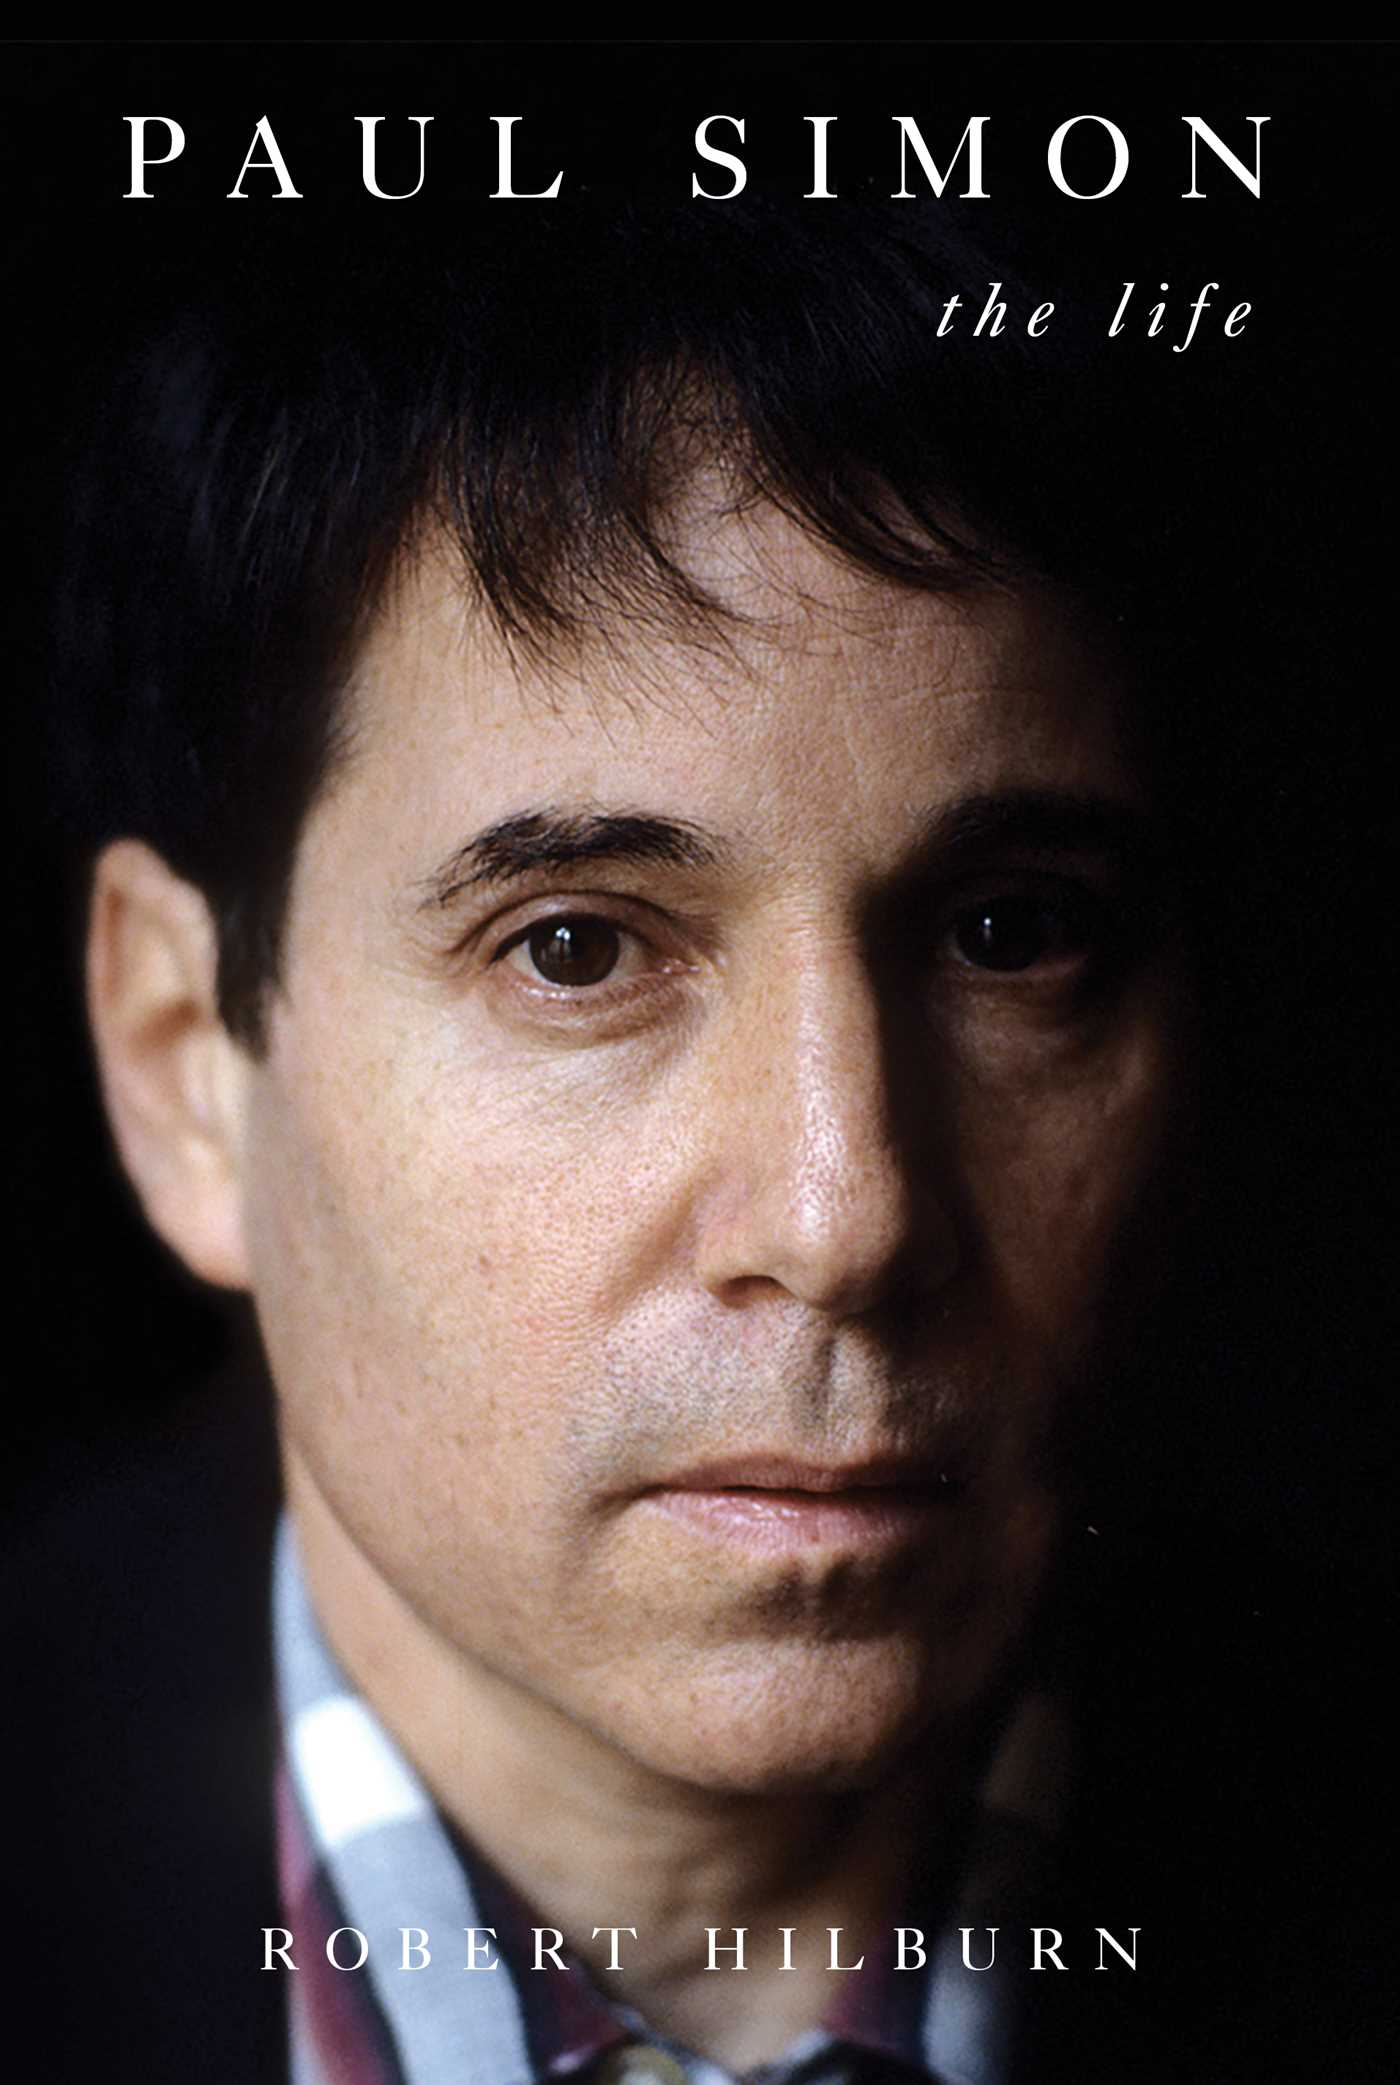 Paul simon 9781501112126 hr